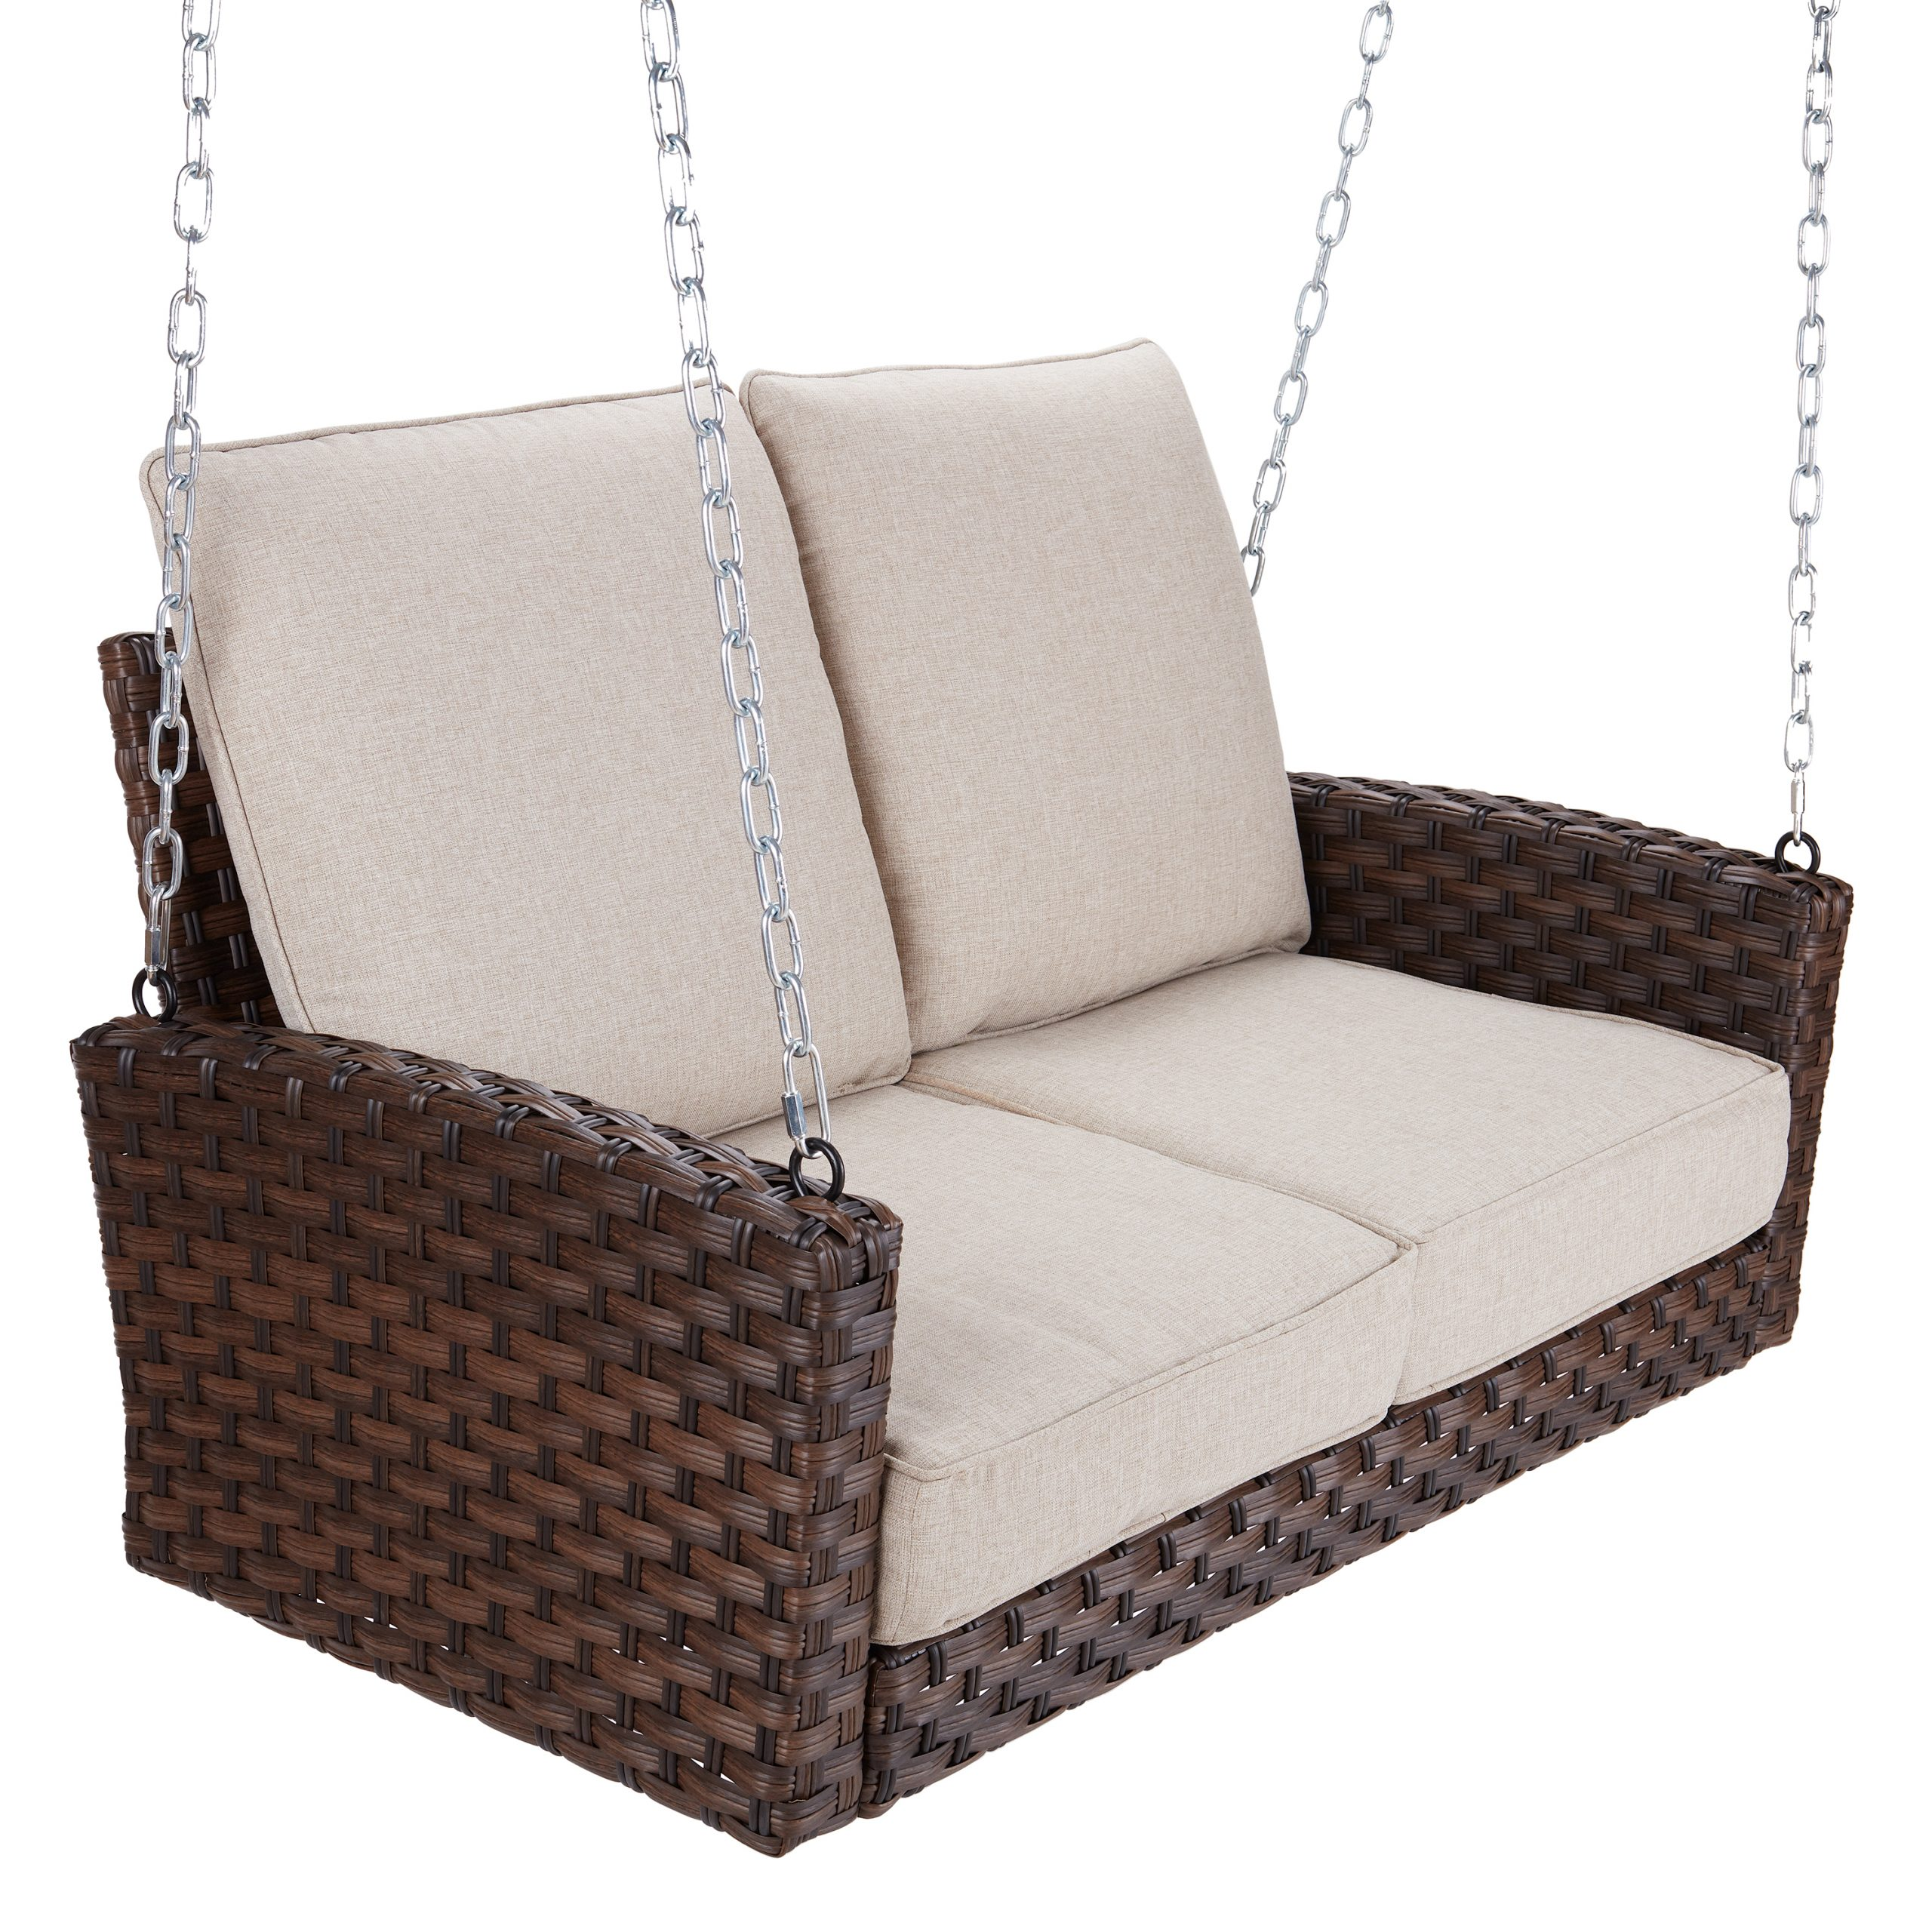 2 Person Outdoor Convertible Canopy Swing Gliders With Removable Cushions Beige For Widely Used Better Homes & Gardens Hensley Outdoor Wicker Porch Swing (View 27 of 30)